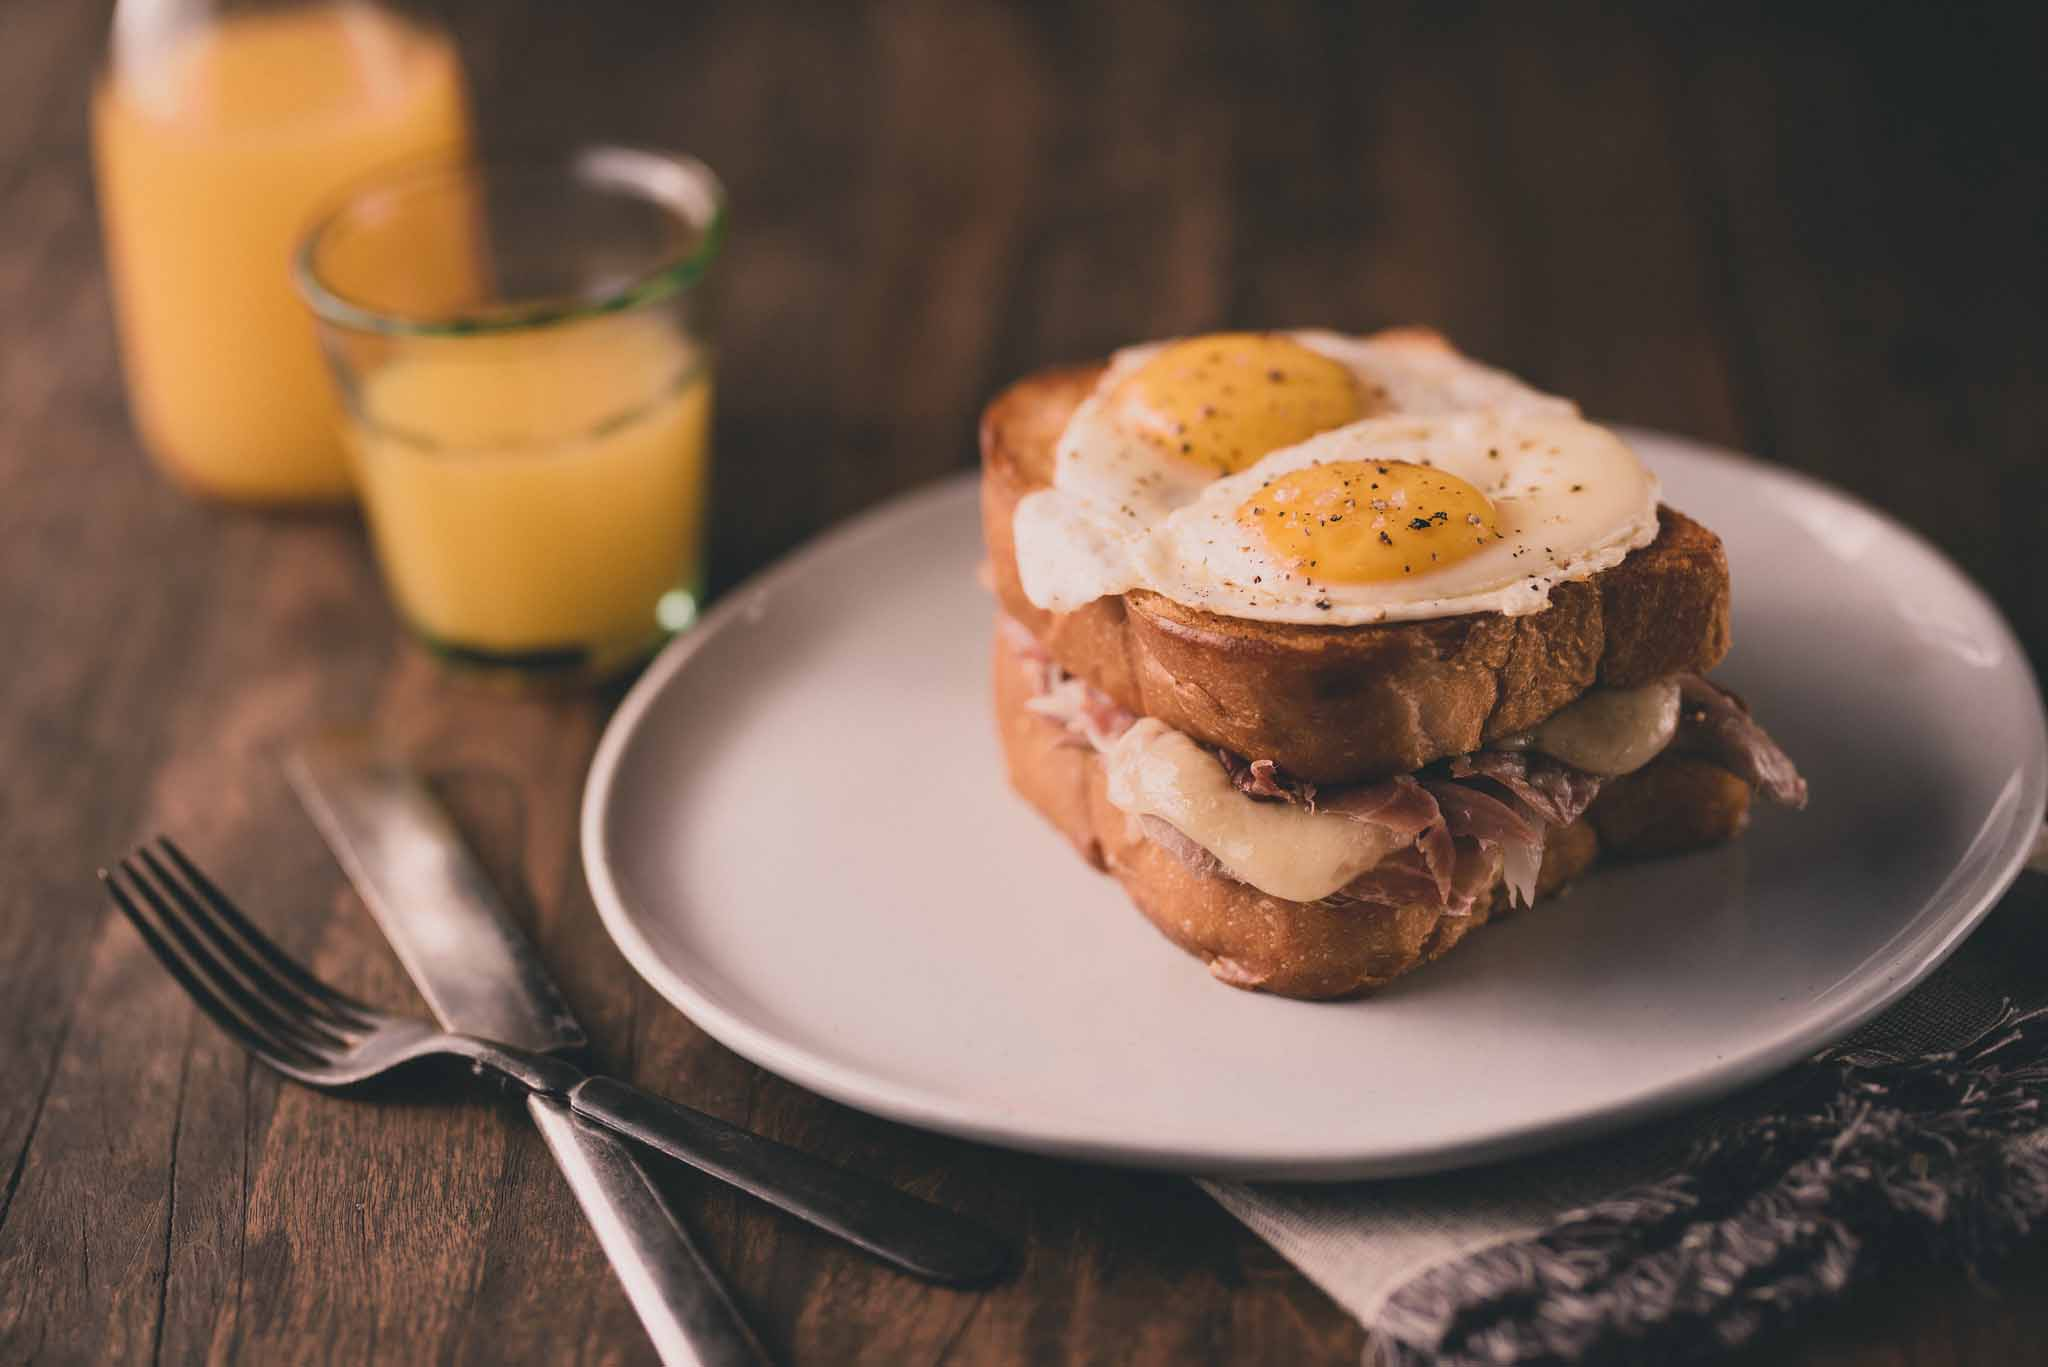 DEBUTANTE DUCK CONFIT Goodnight Brother's country ham proscuitto, Gruyere cheese, two fried eggs, on challah bread